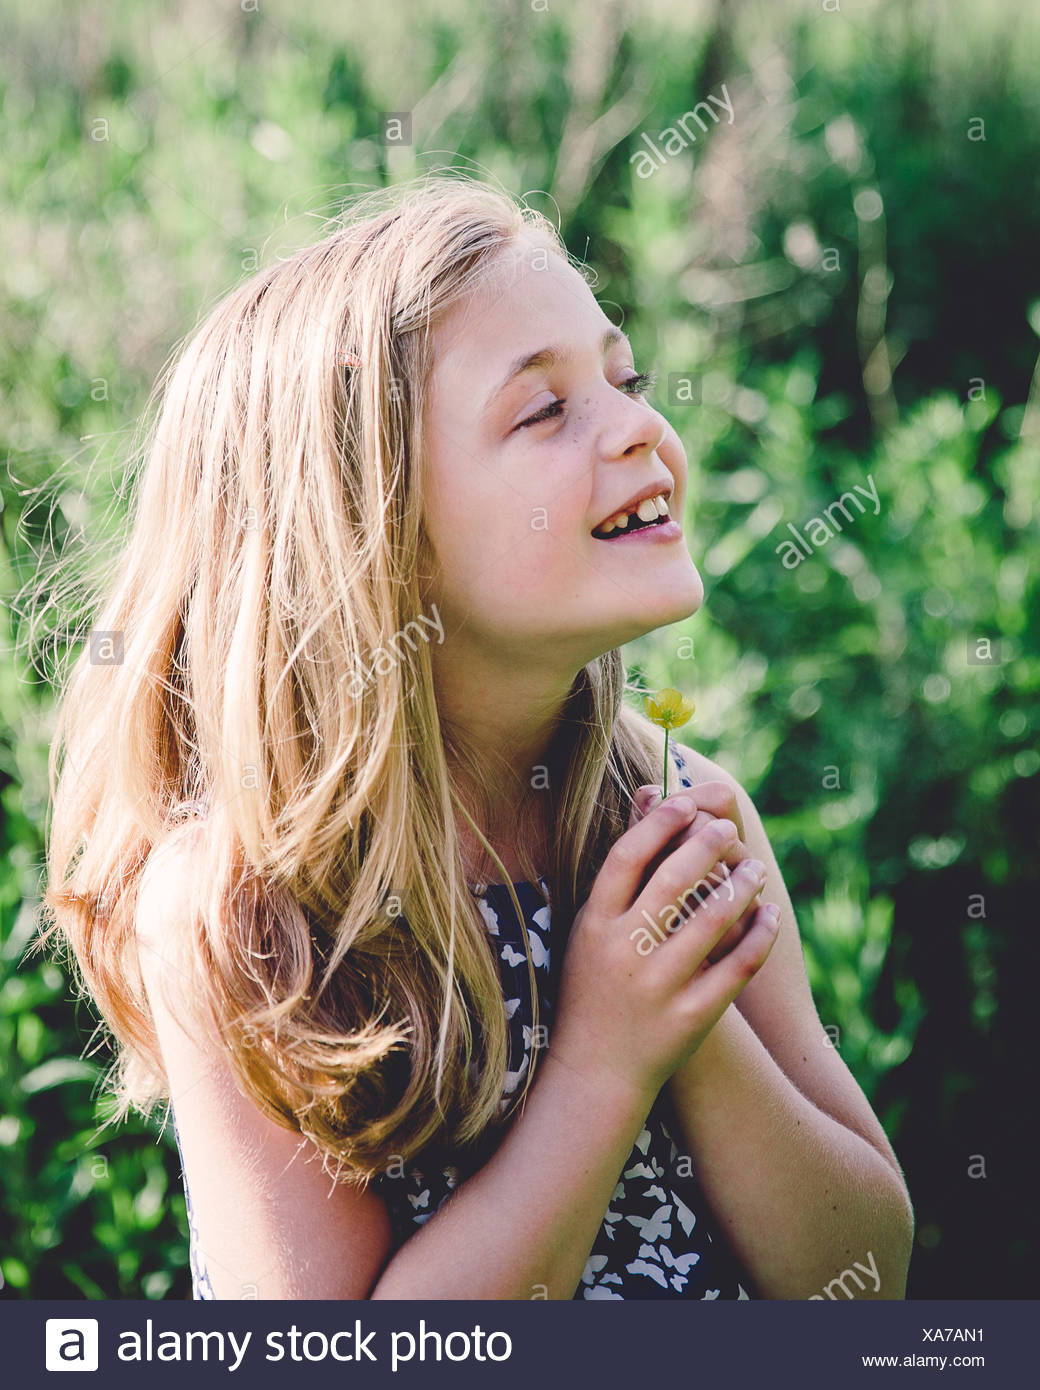 Portrait of a smiling girl holding a buttercup under her chin - Stock Image